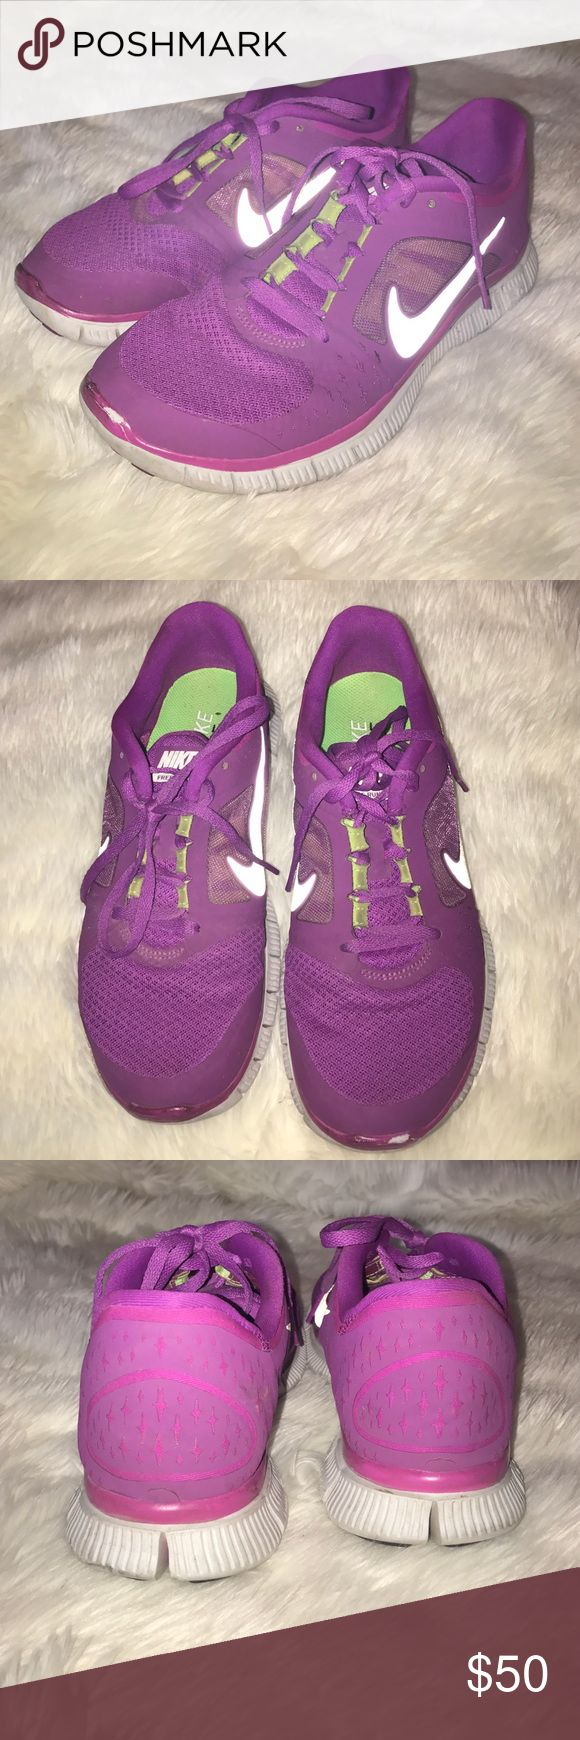 Nike Free 5.0 Nike Free 5.0/ Color: Magenta with accents of lime green/ Size: US women's 8 Nike Shoes Athletic Shoes